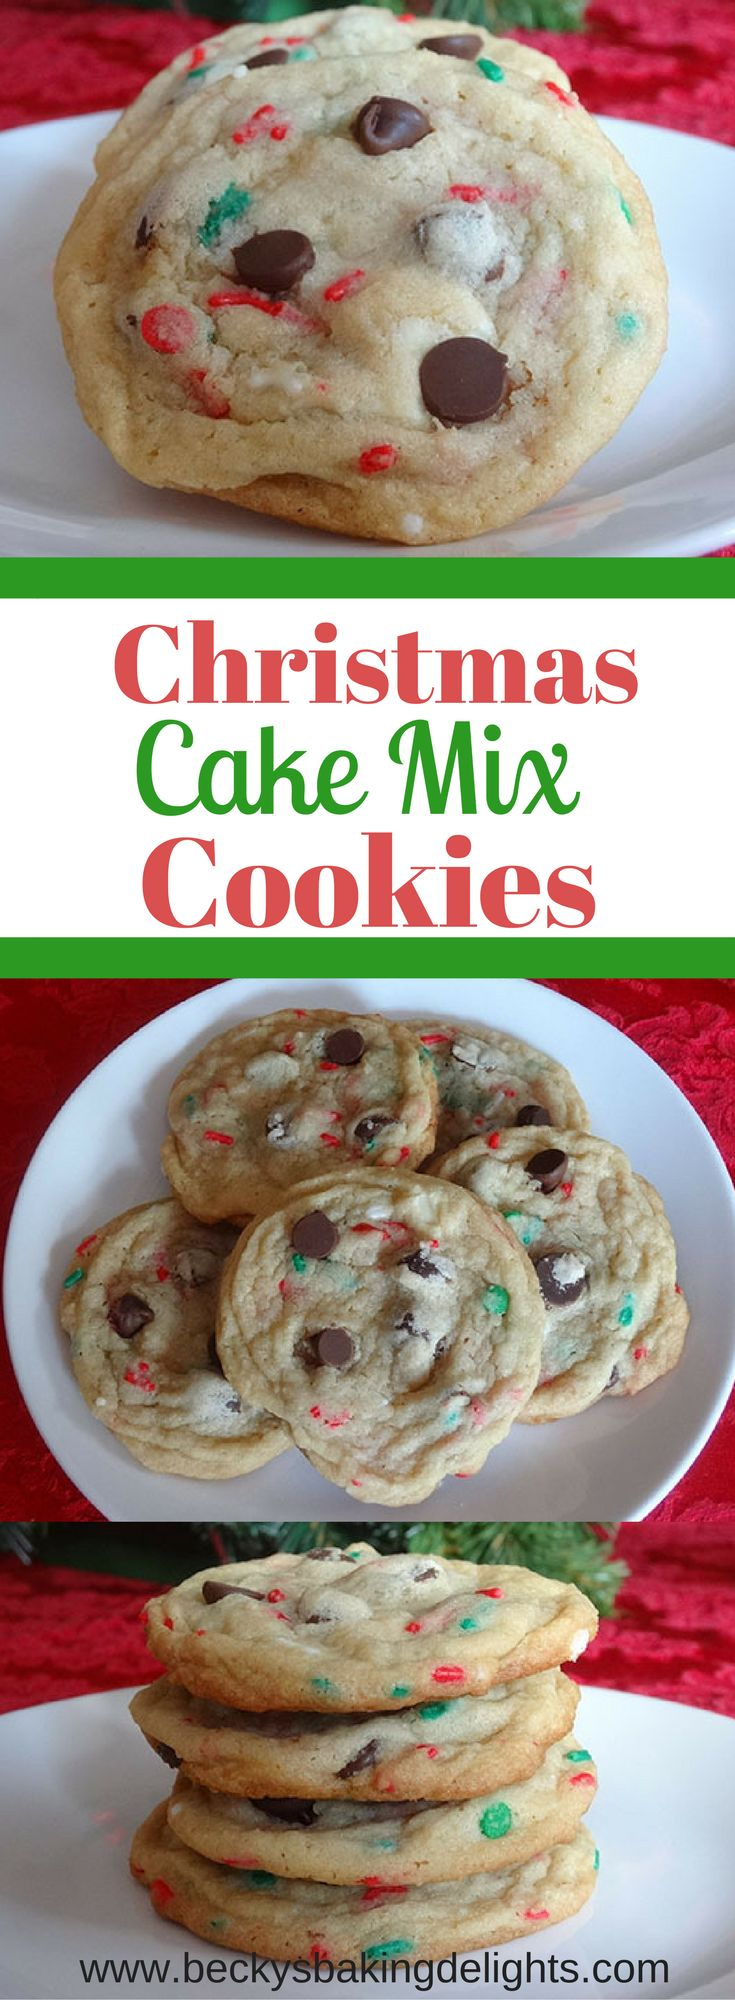 These Christmas cake mix cookies combined with a triple chocolate chip cookie are soft, chewy and delicious. Holiday colored sprinkles add to the festive nature of this cookie.